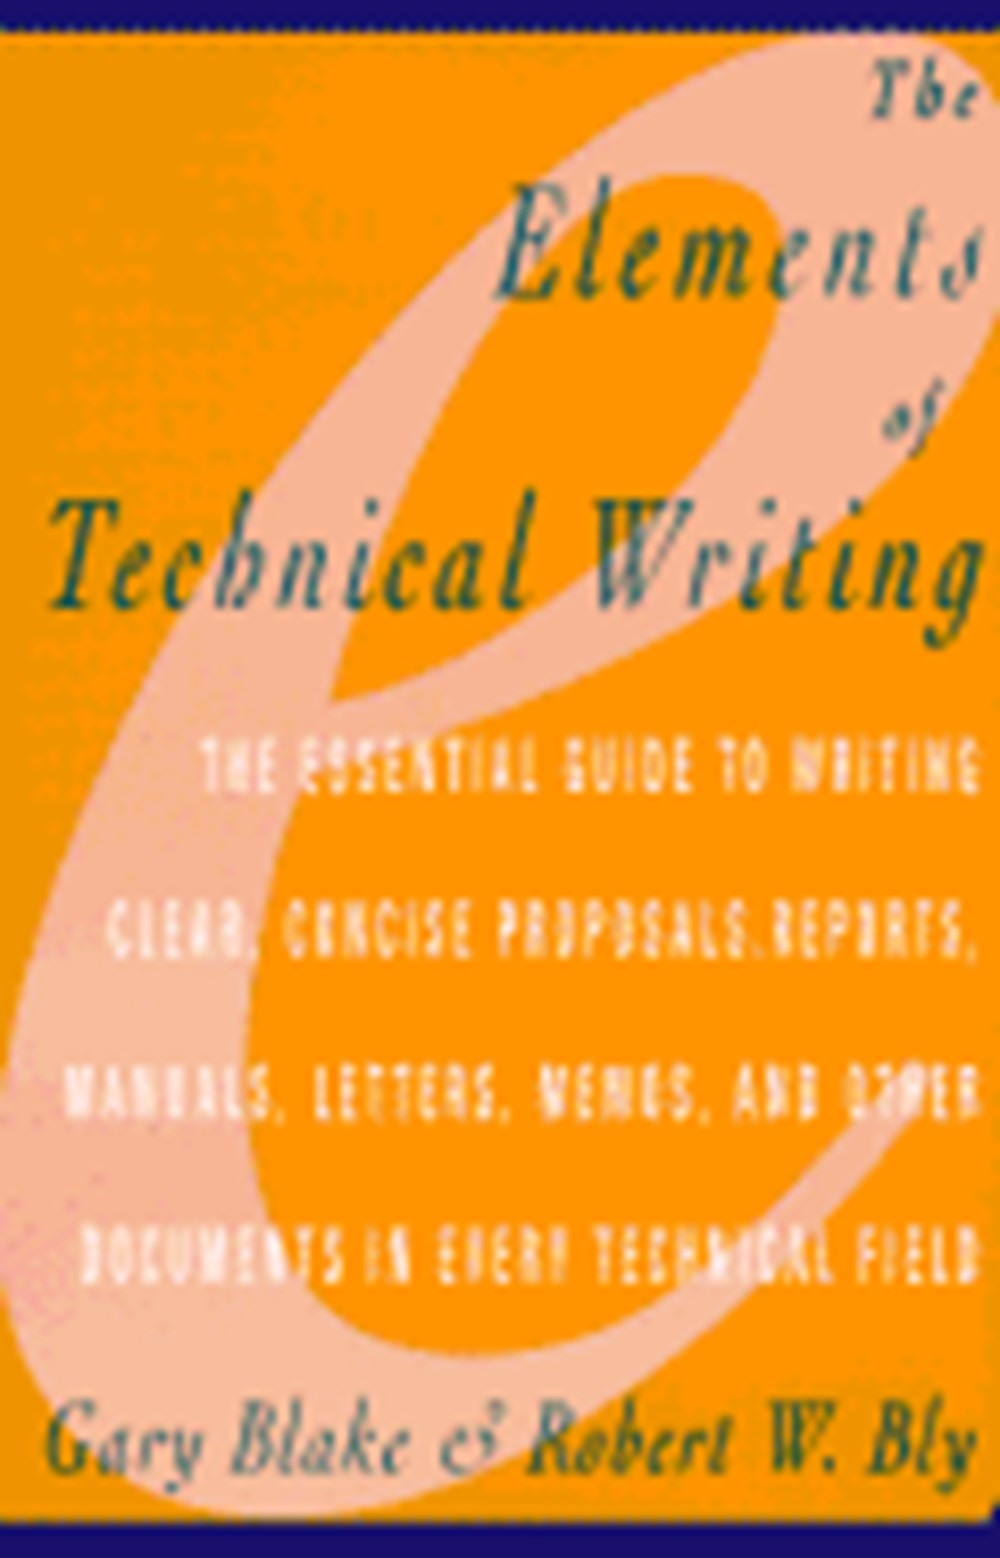 Elements of Technical Writing (Revised)